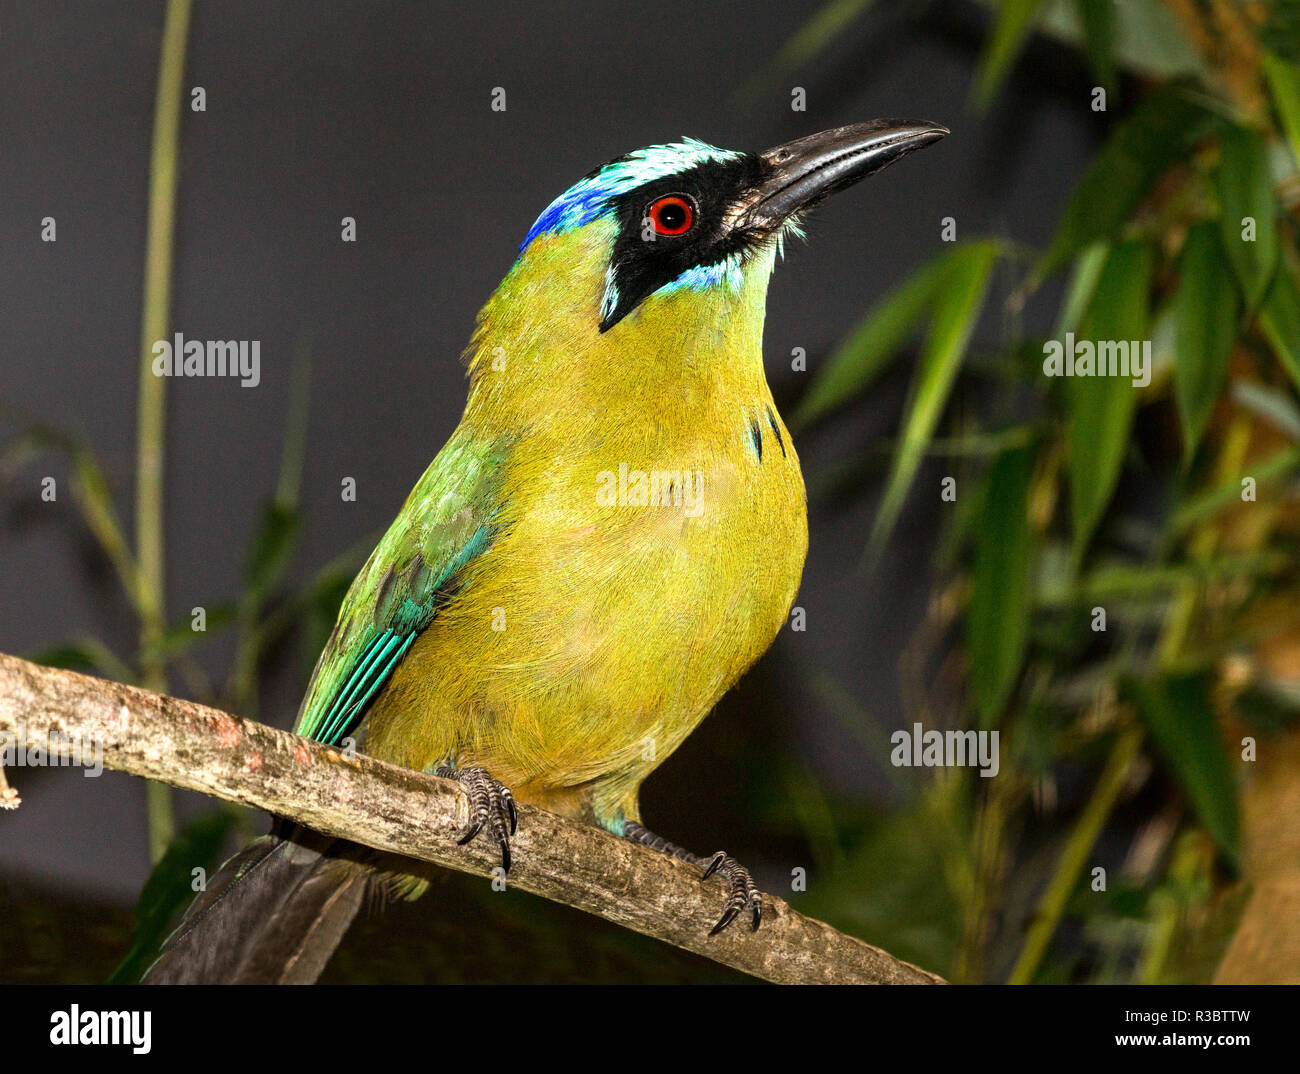 Blue-crowned Motmot (Momotus momota) is from the tropical rain forests of Central and South America. - Stock Image